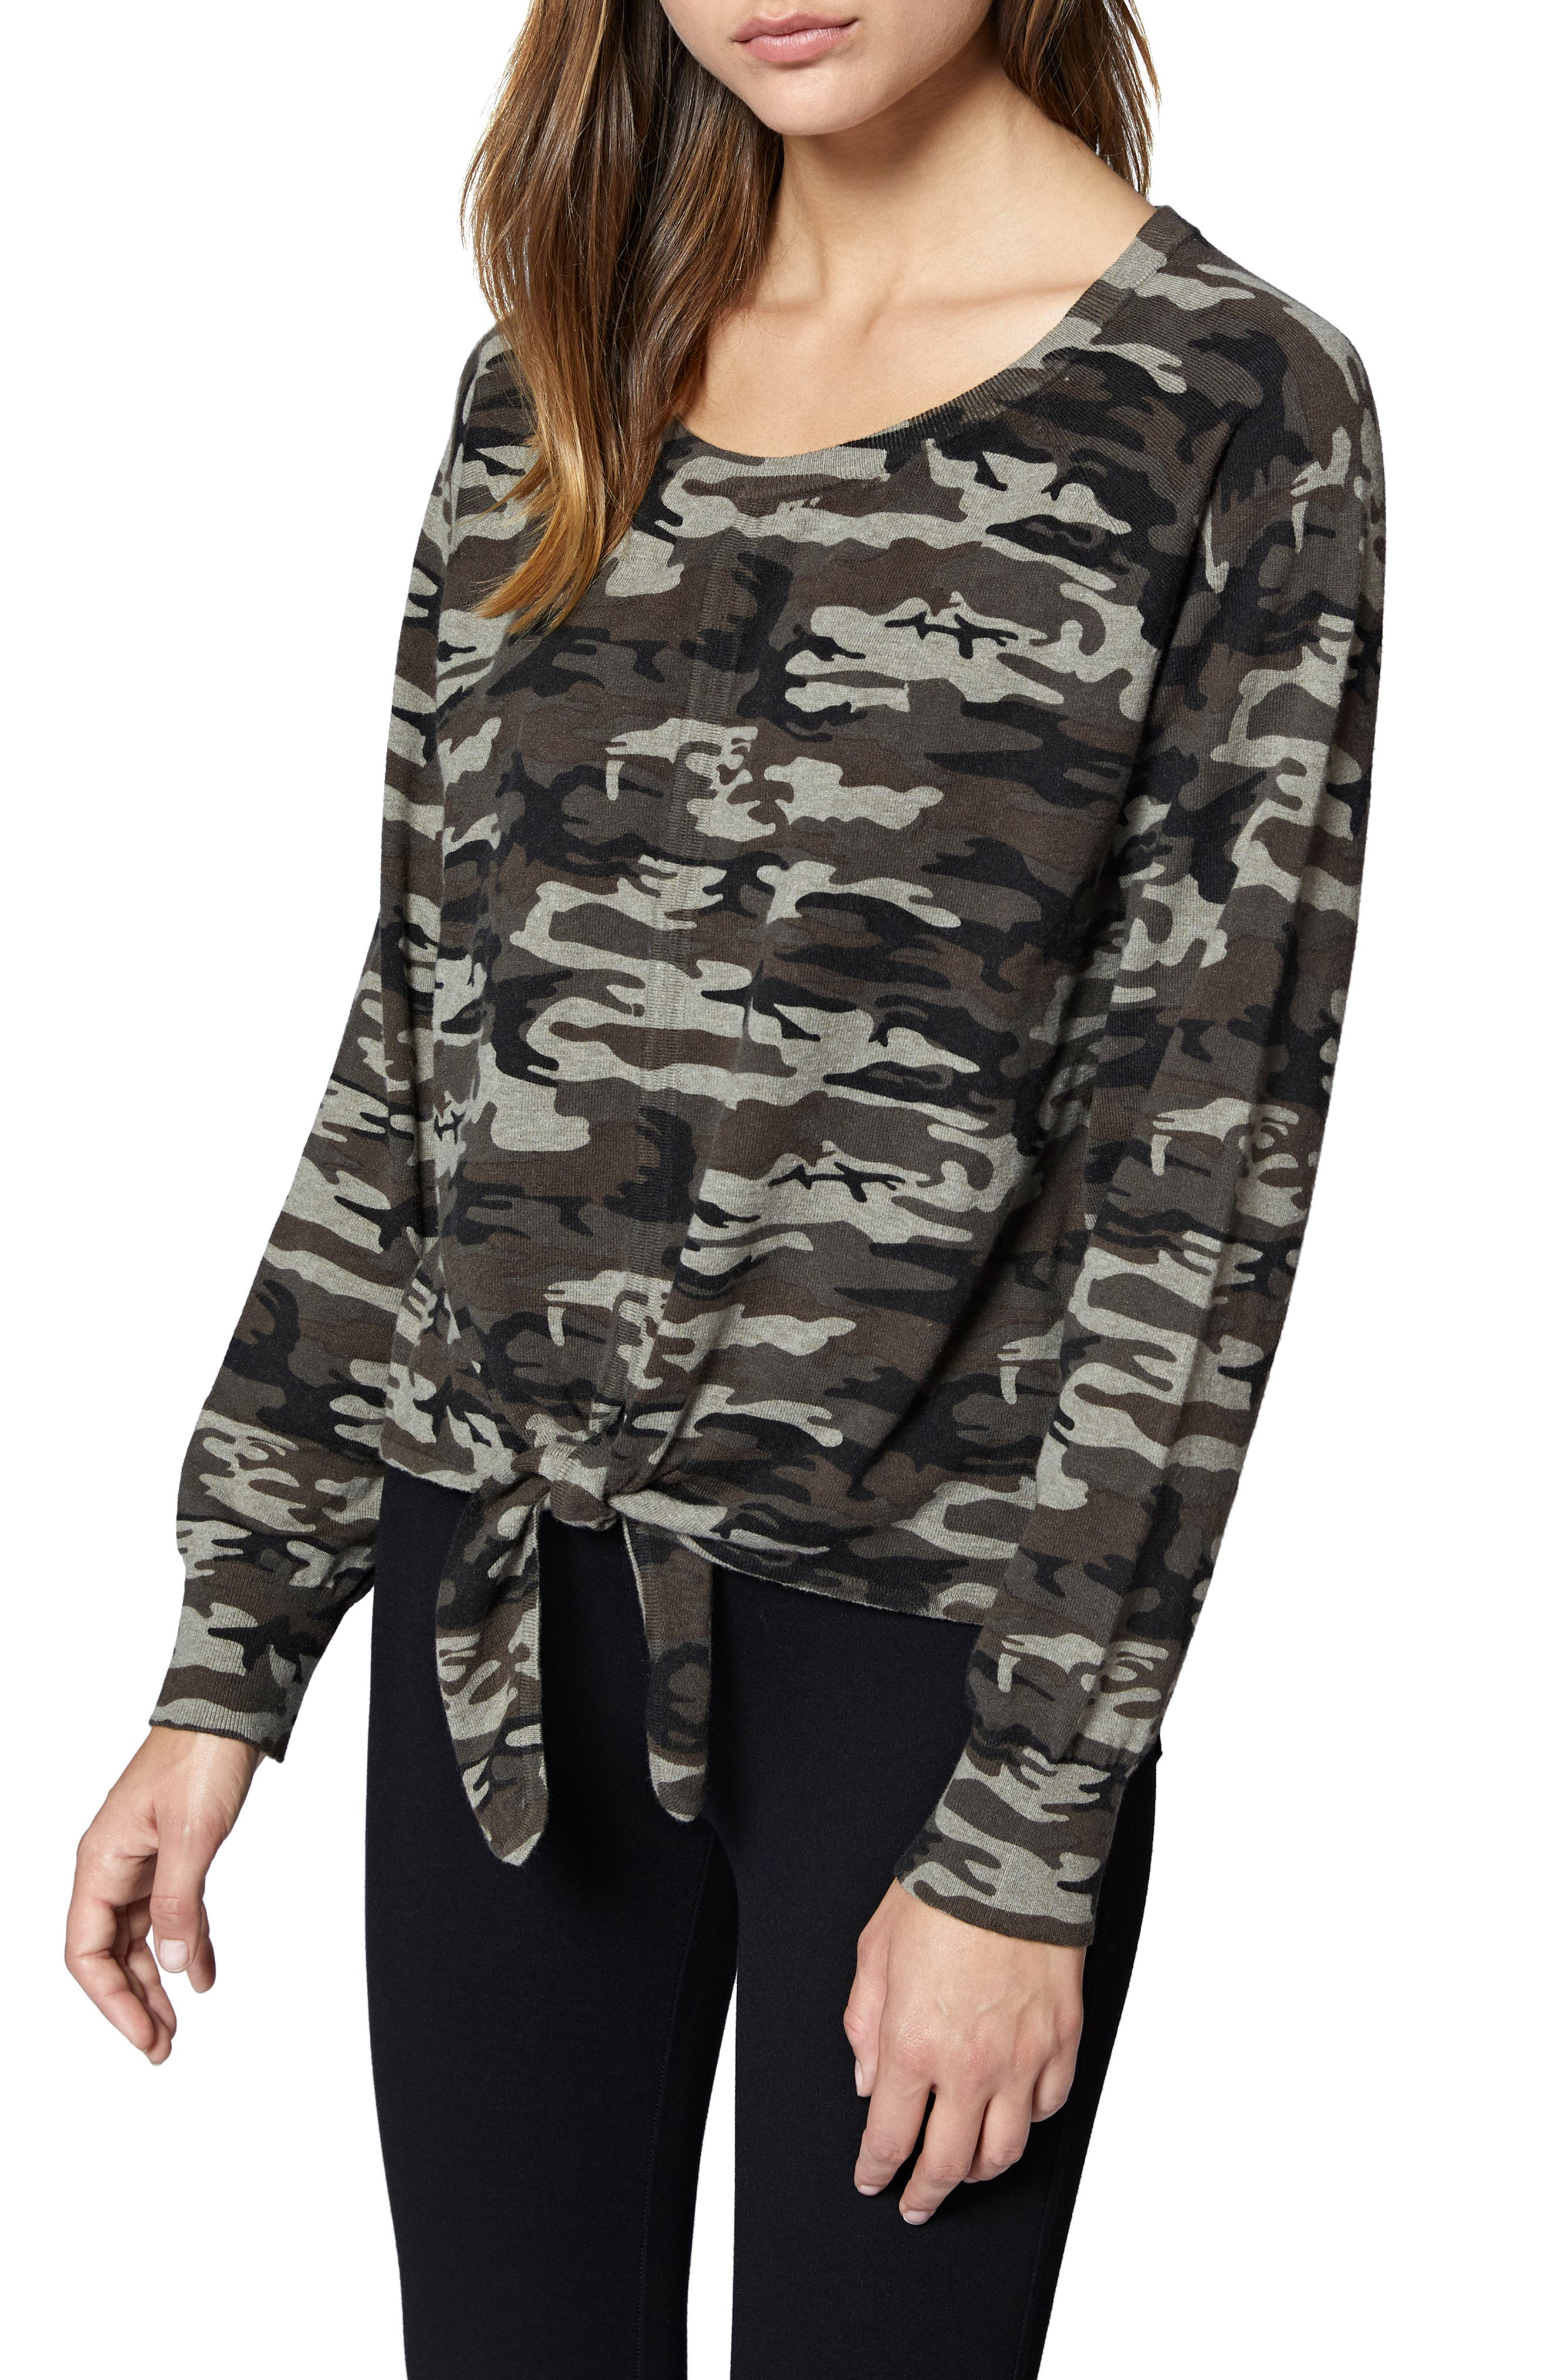 Laguna Camouflage Tie Front Top,                             Main thumbnail 1, color,                             HUMAN NATURE CAMO